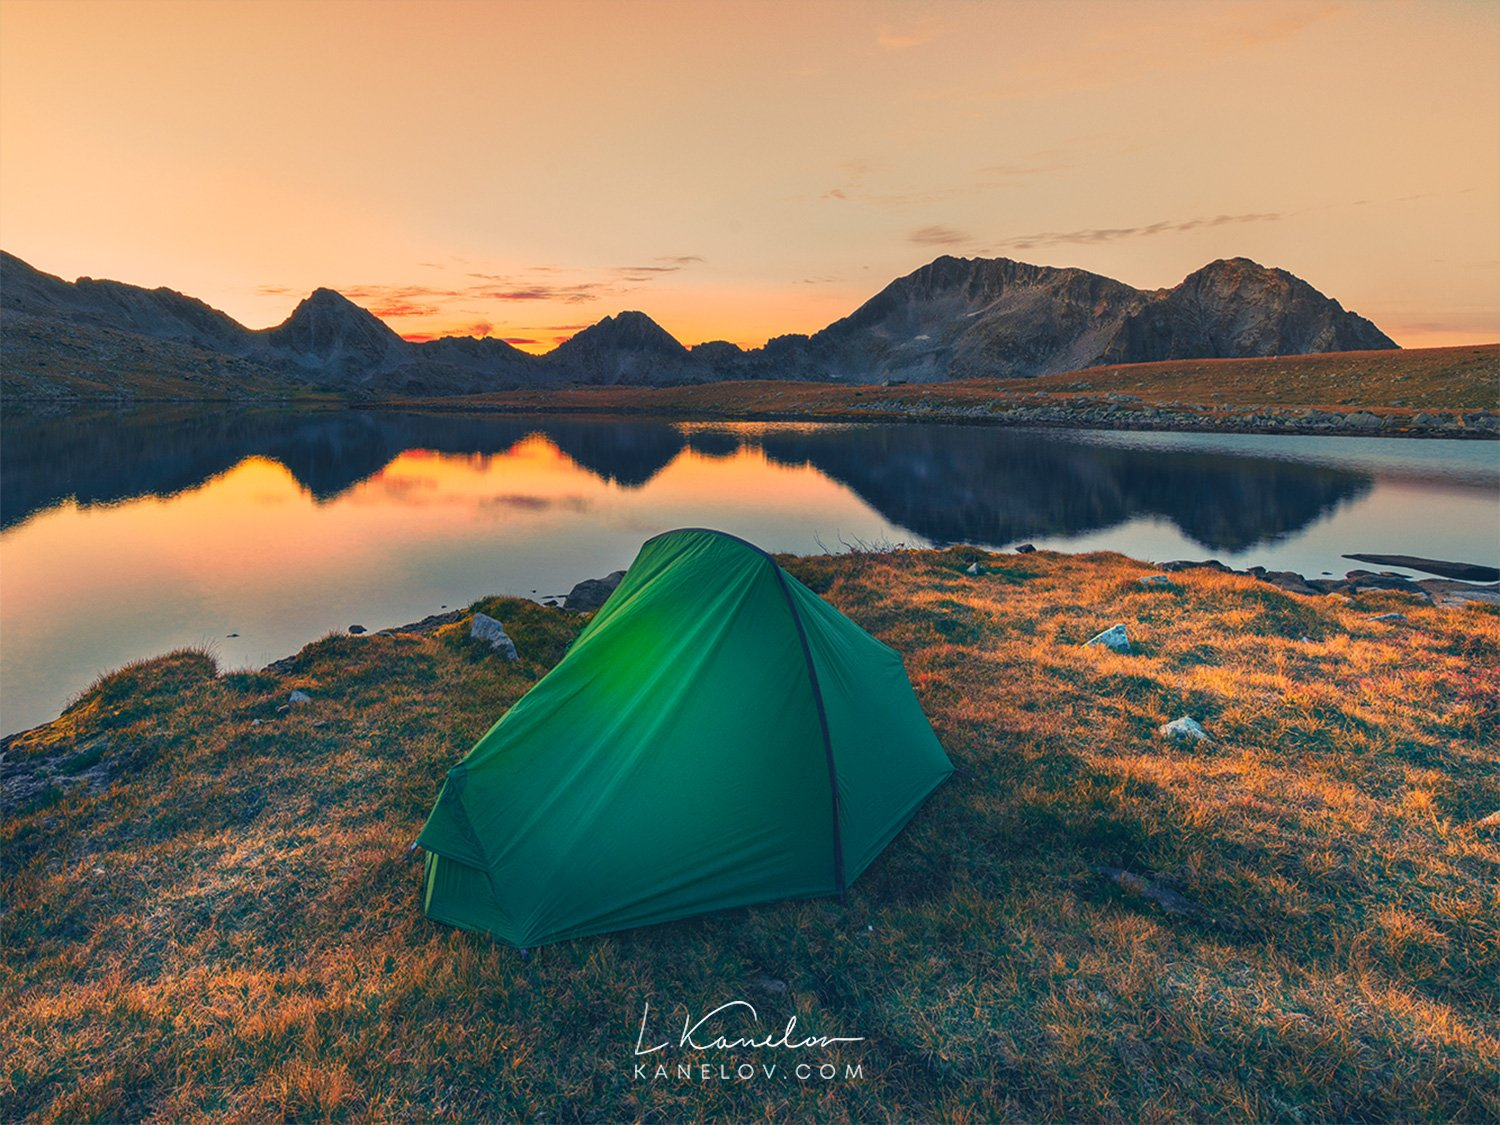 Tent on a mountain lake at sunset